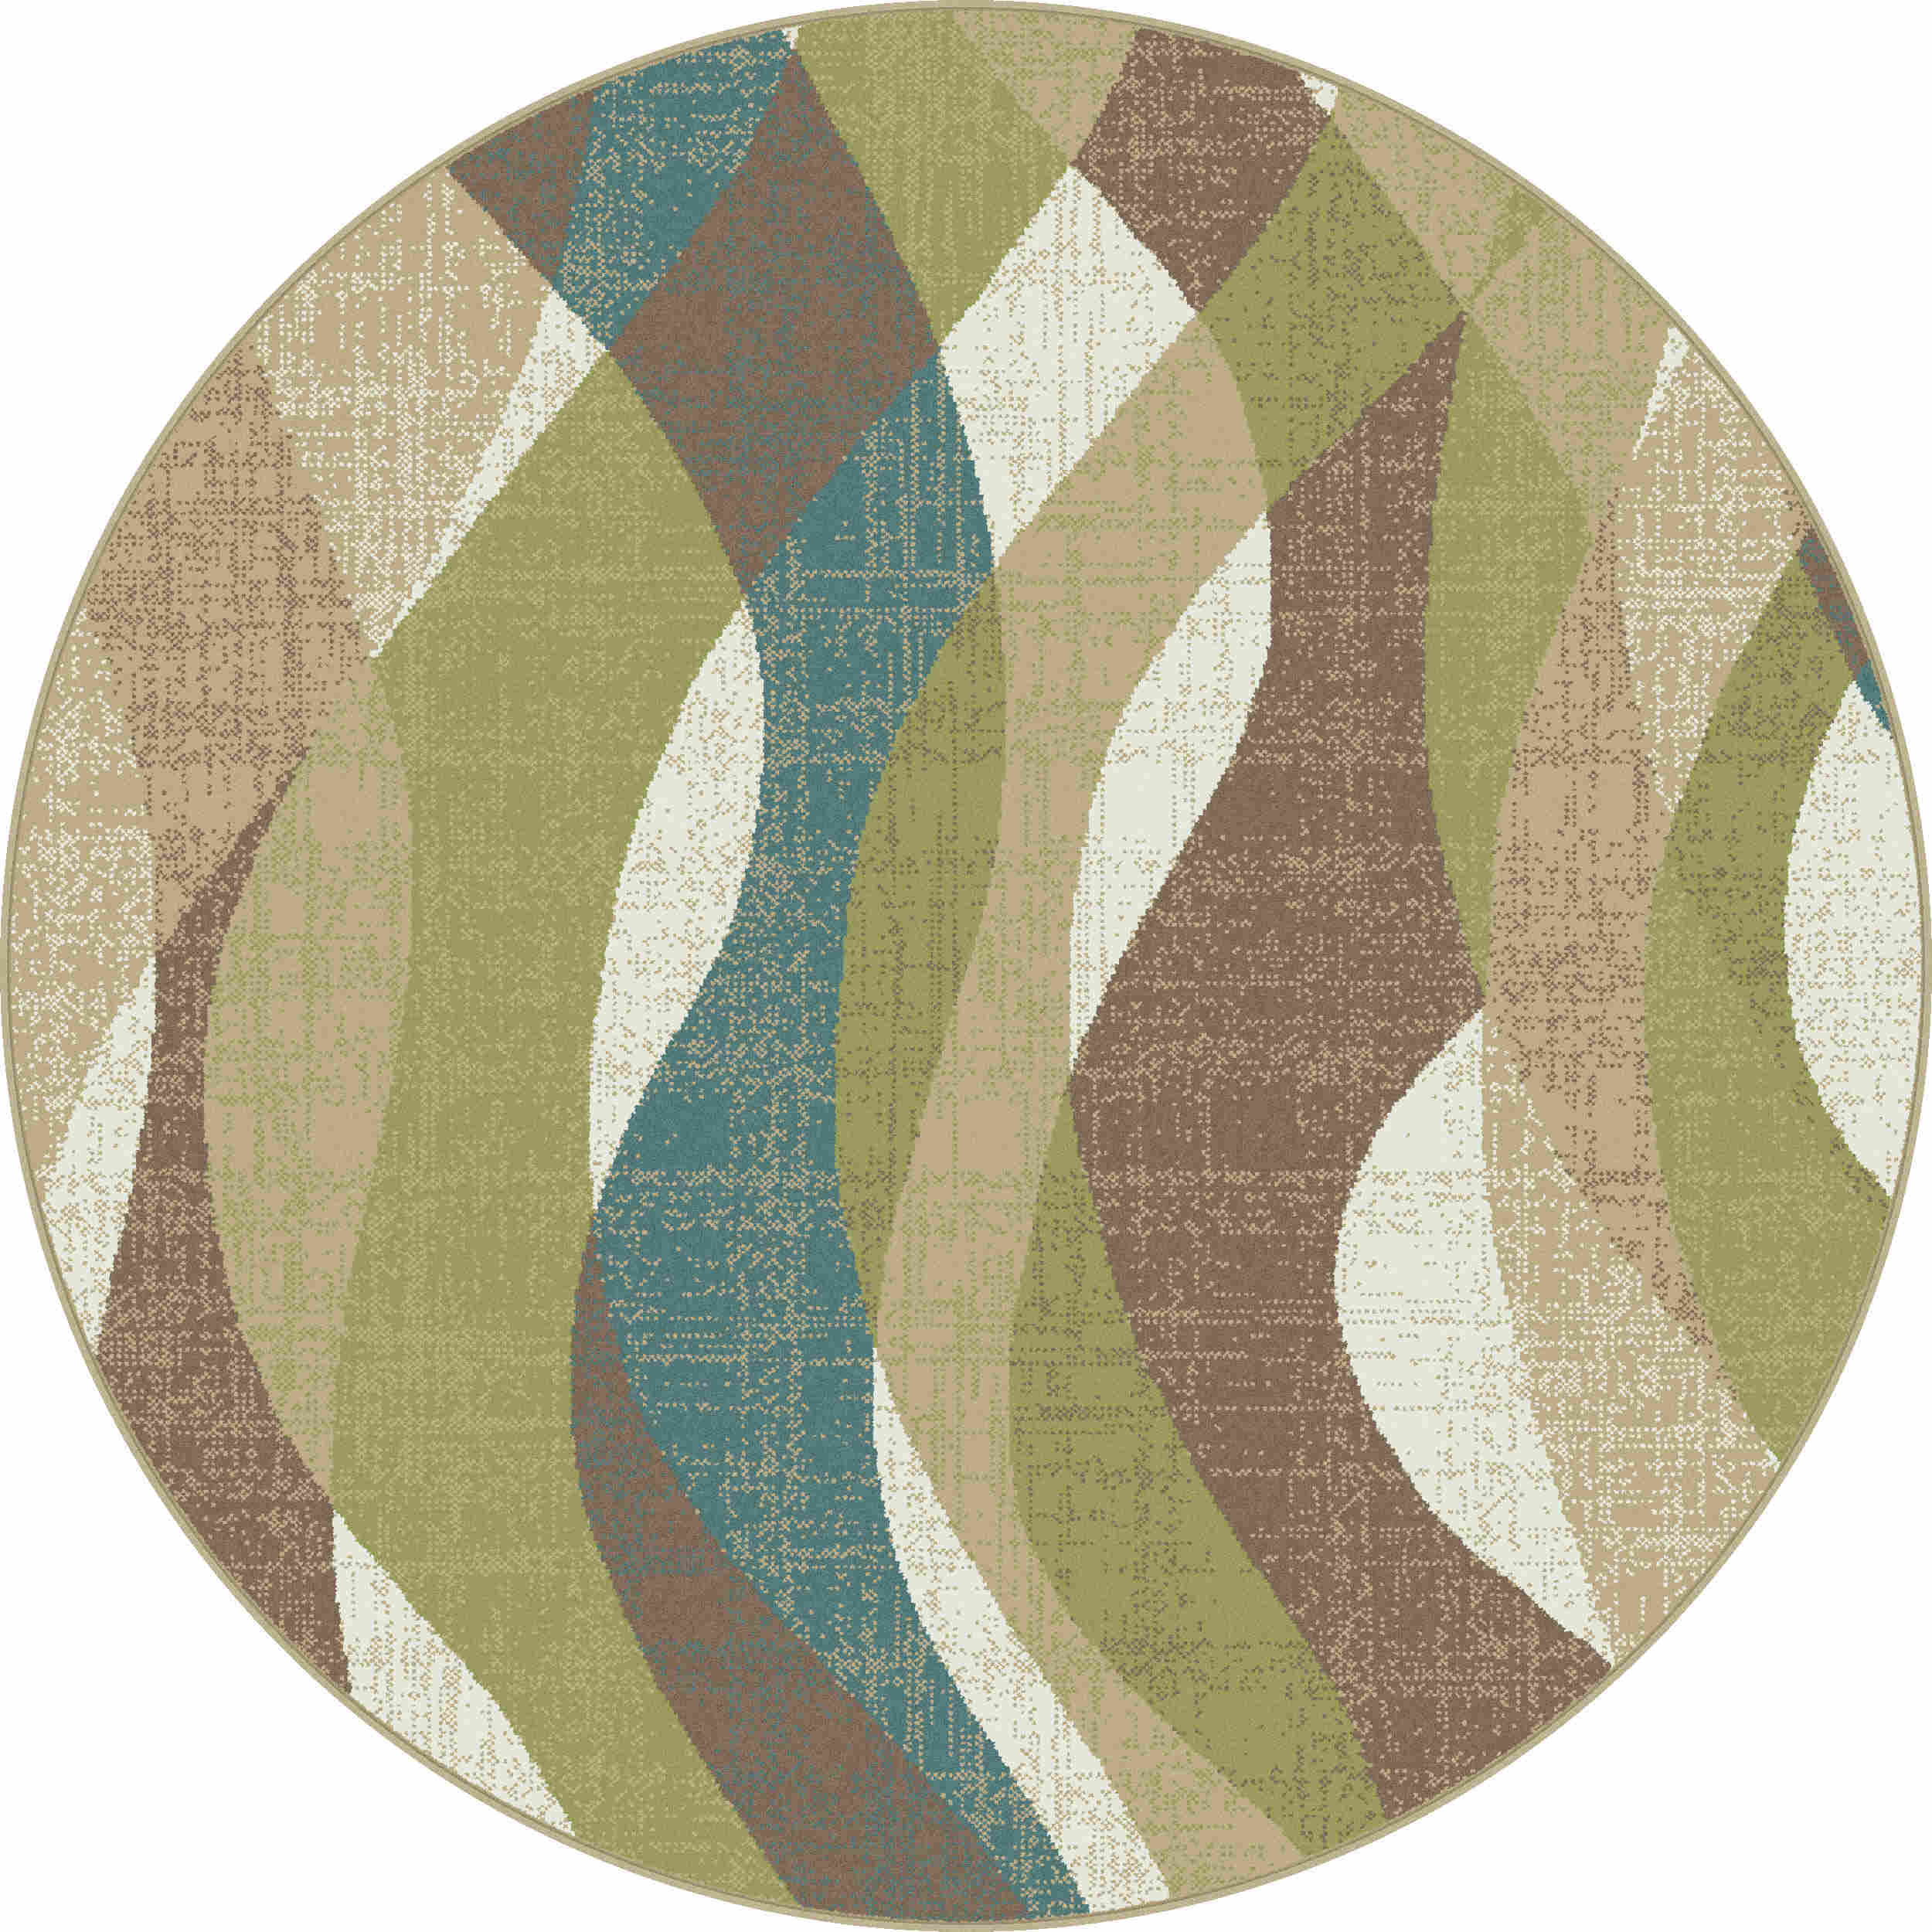 Deco Dco1012 Ivory Transitional Area Rug